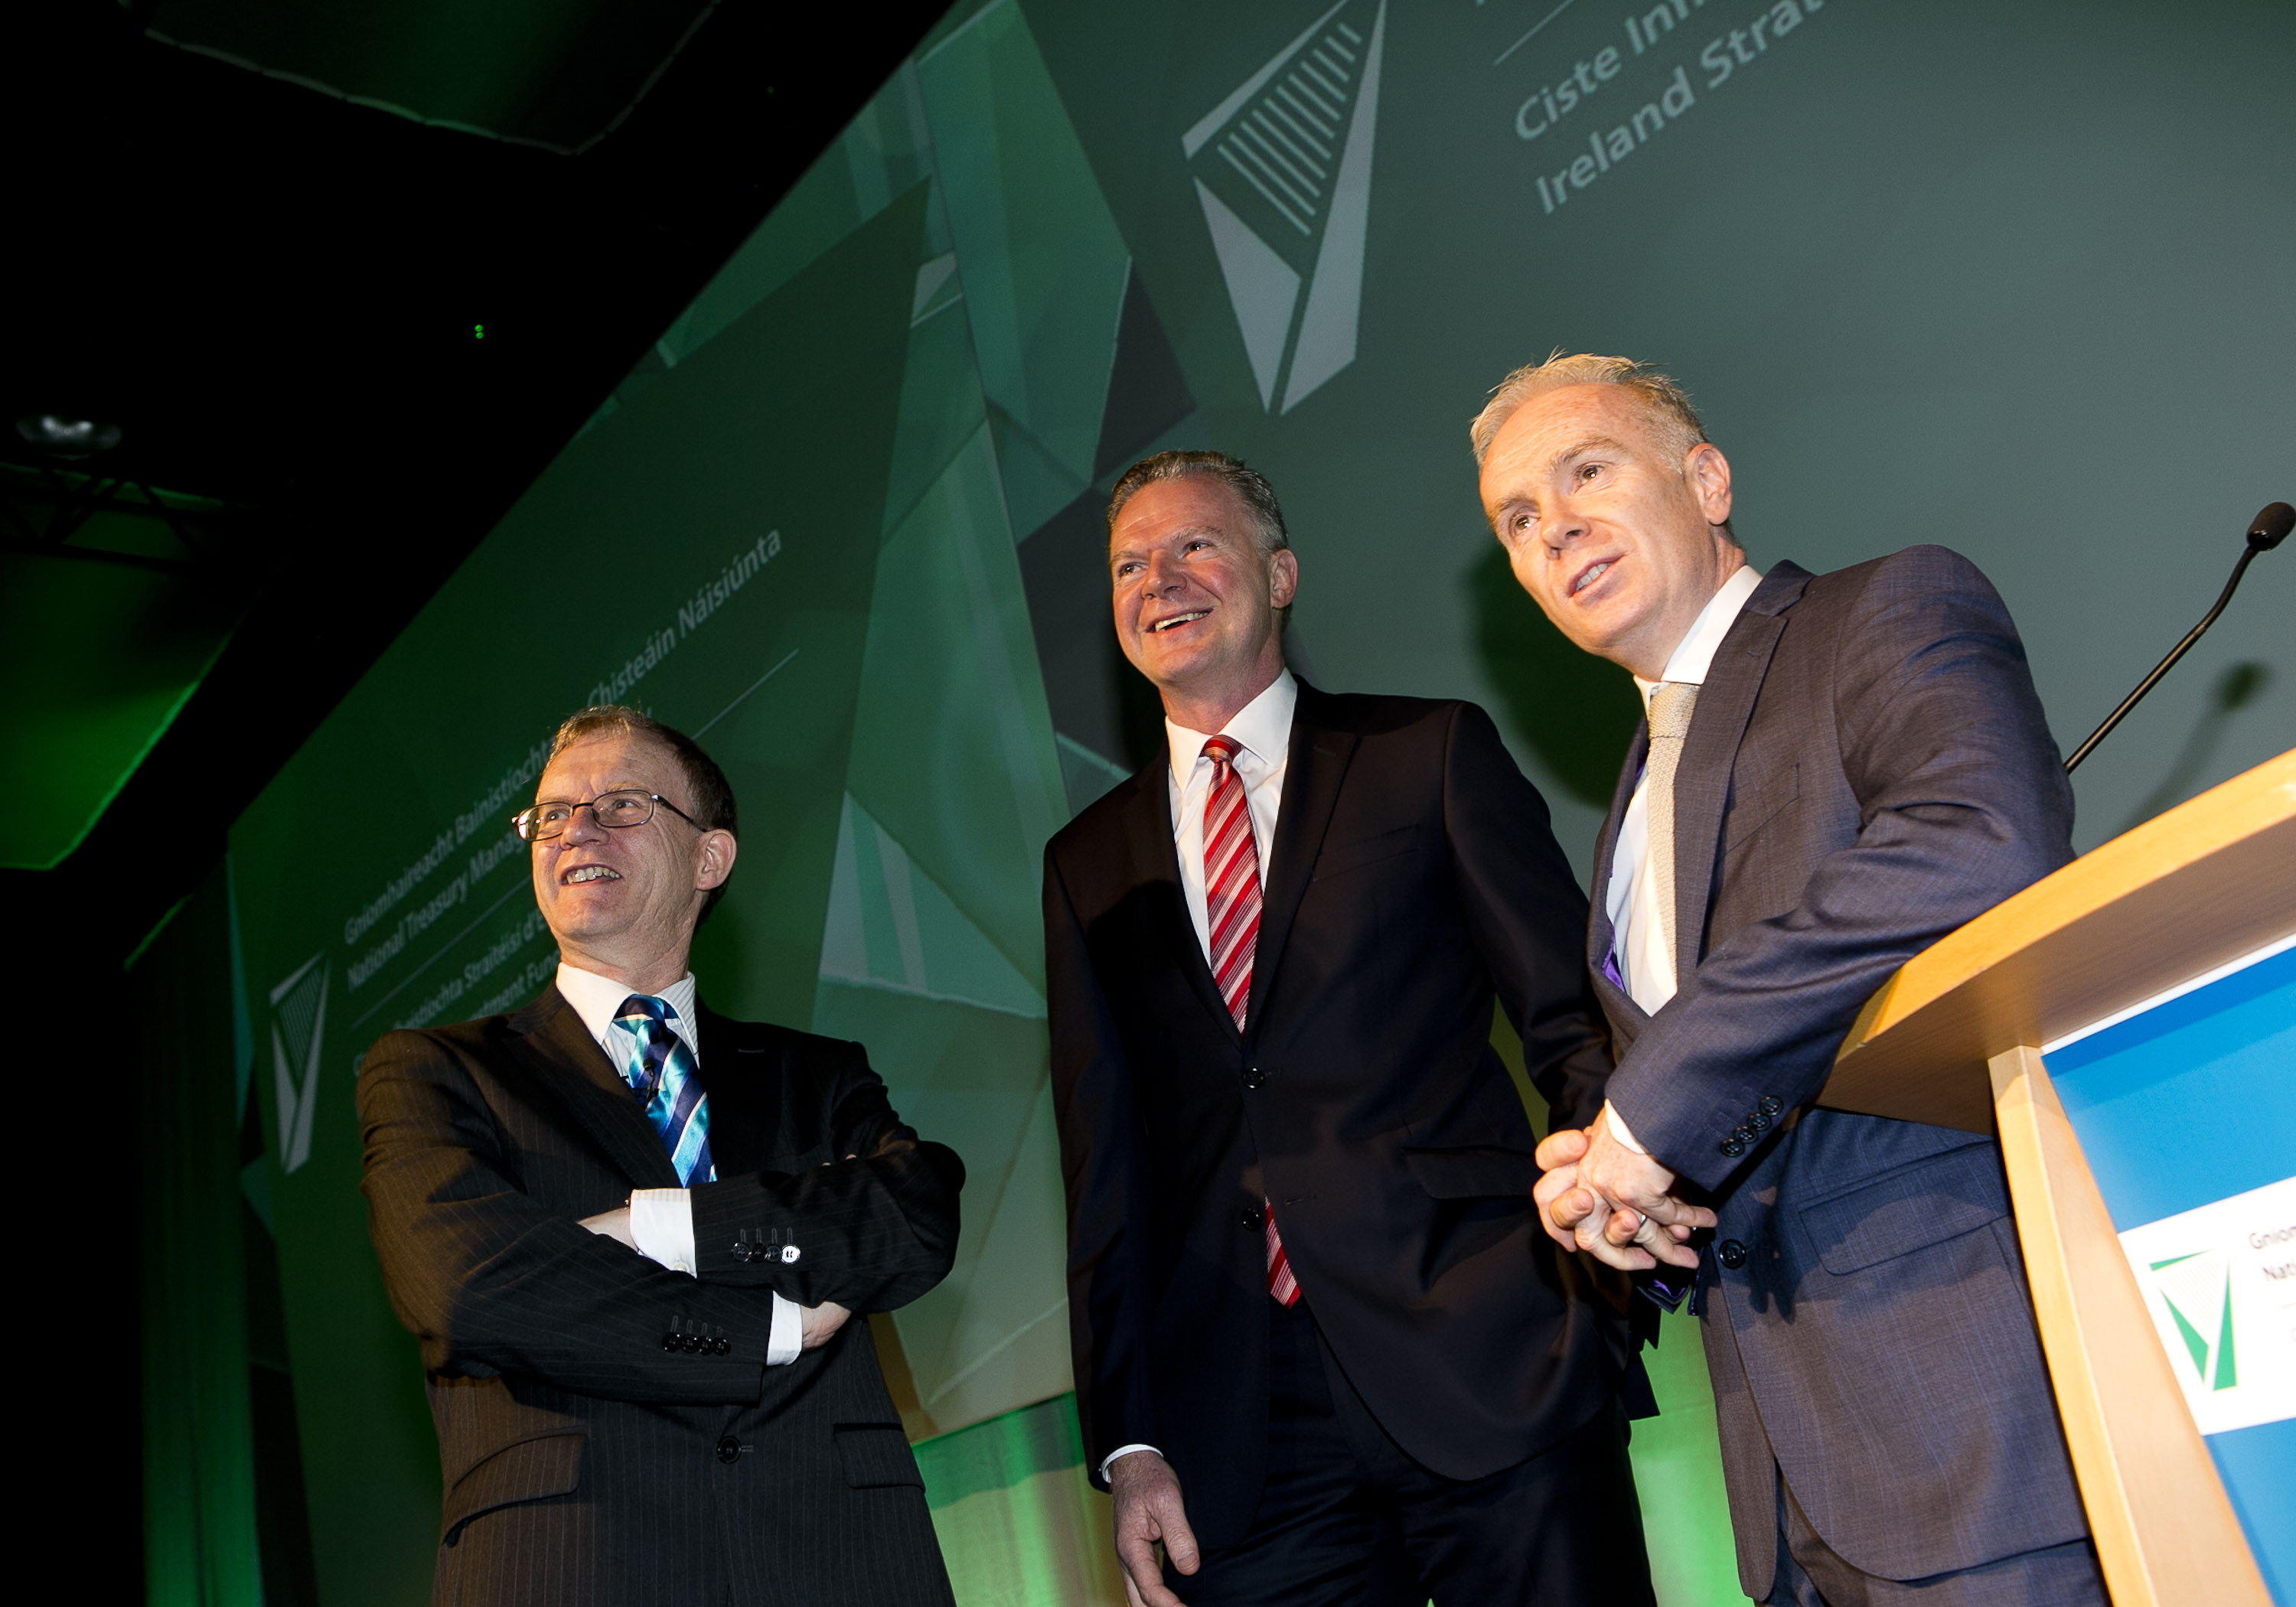 Market Engagement Event, Dublin Convention Centre, April 2016: L-R ISIF Director, Eugene O'Callaghan, NTMA CEO Conor O'Kelly, MC and Journalist Richard Curran